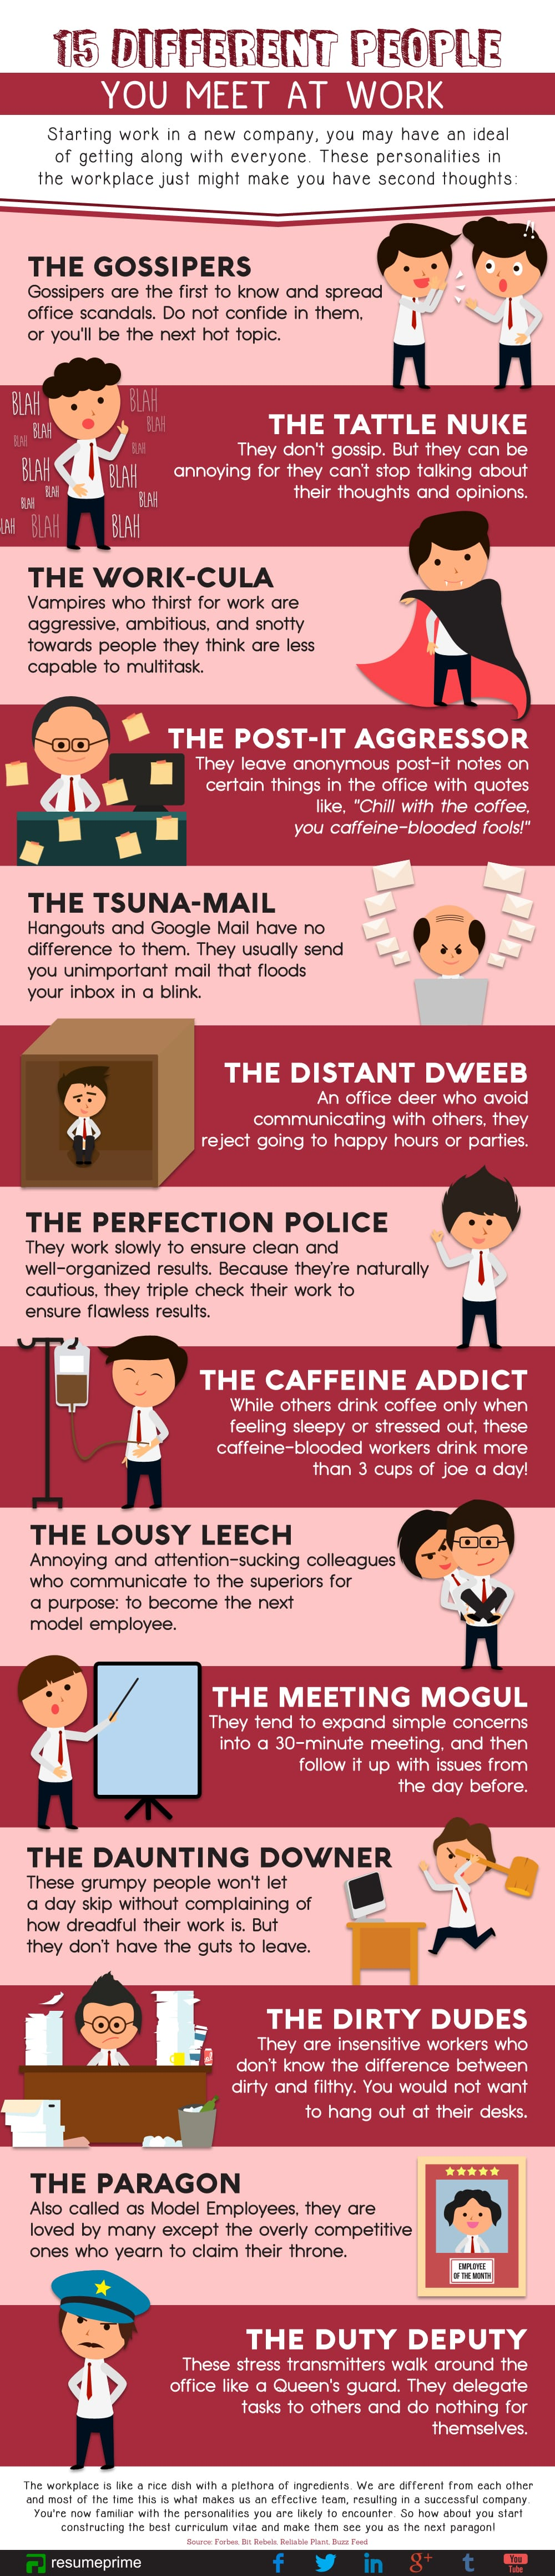 15 Different People You Meet at Work [Infographic]